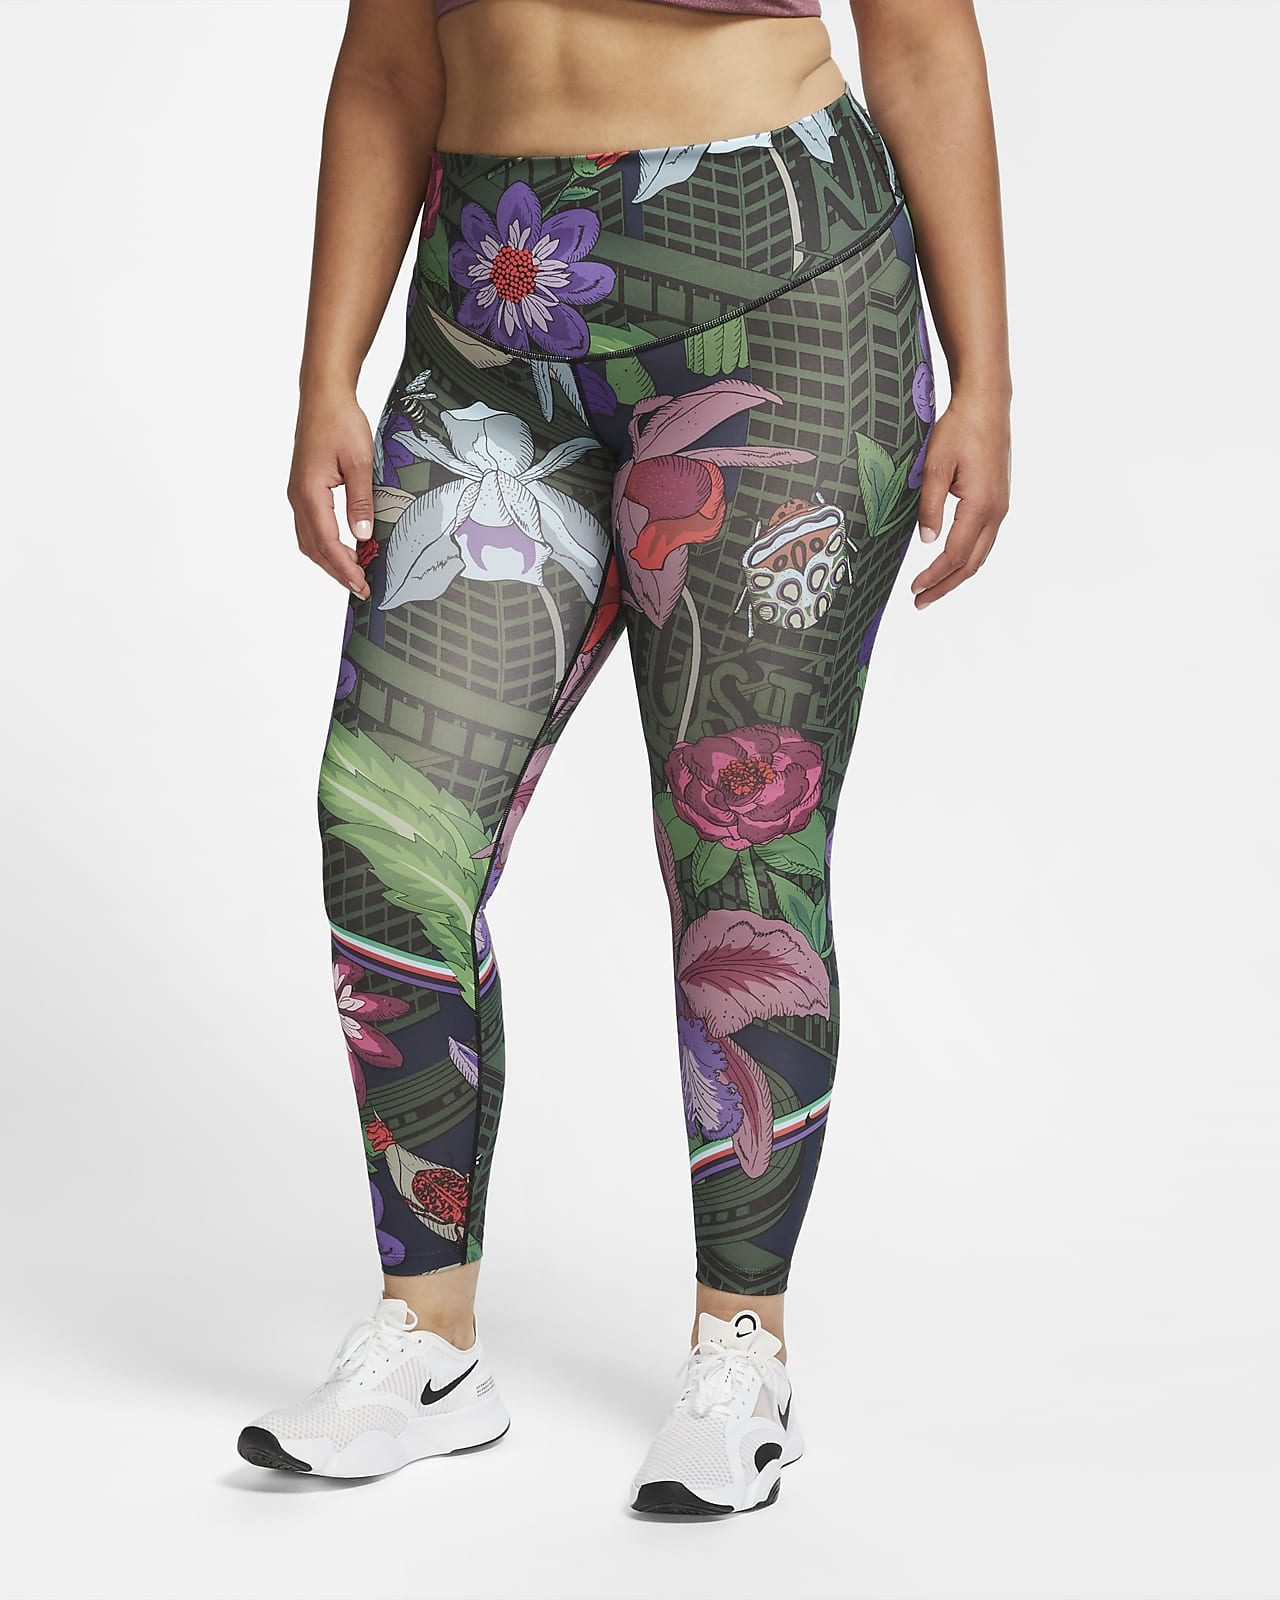 Nike One Icon Clash Women's Printed Tights (Plus Size)